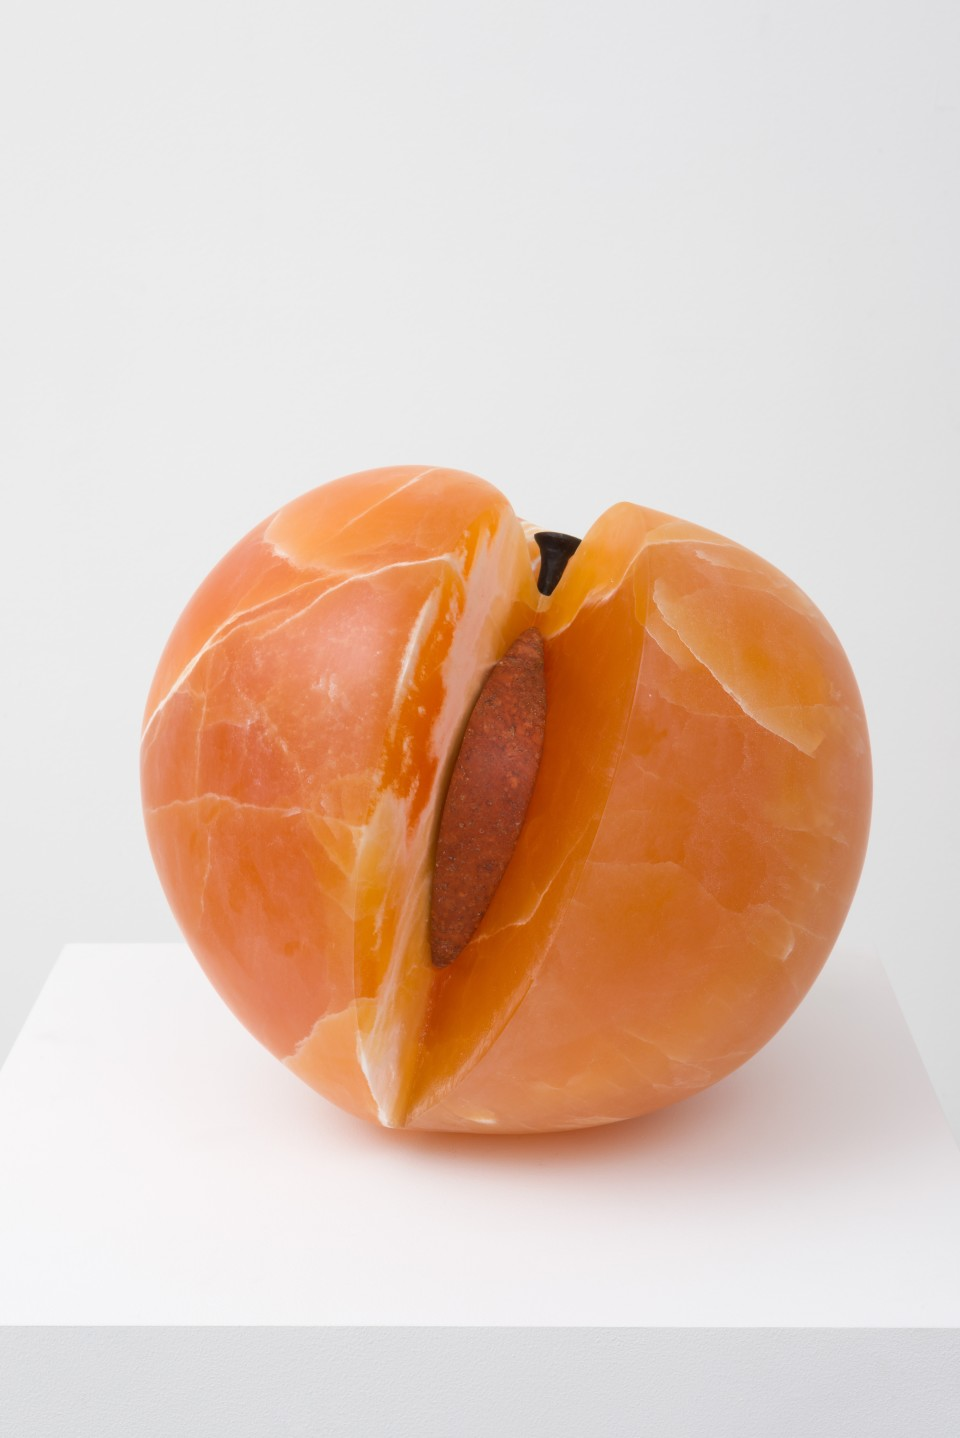 Image: Nevine Mahmoud  Peach with Erotic Inside, 2017  calcite, steel, travertine and glue  13 x 13 x 13 inches